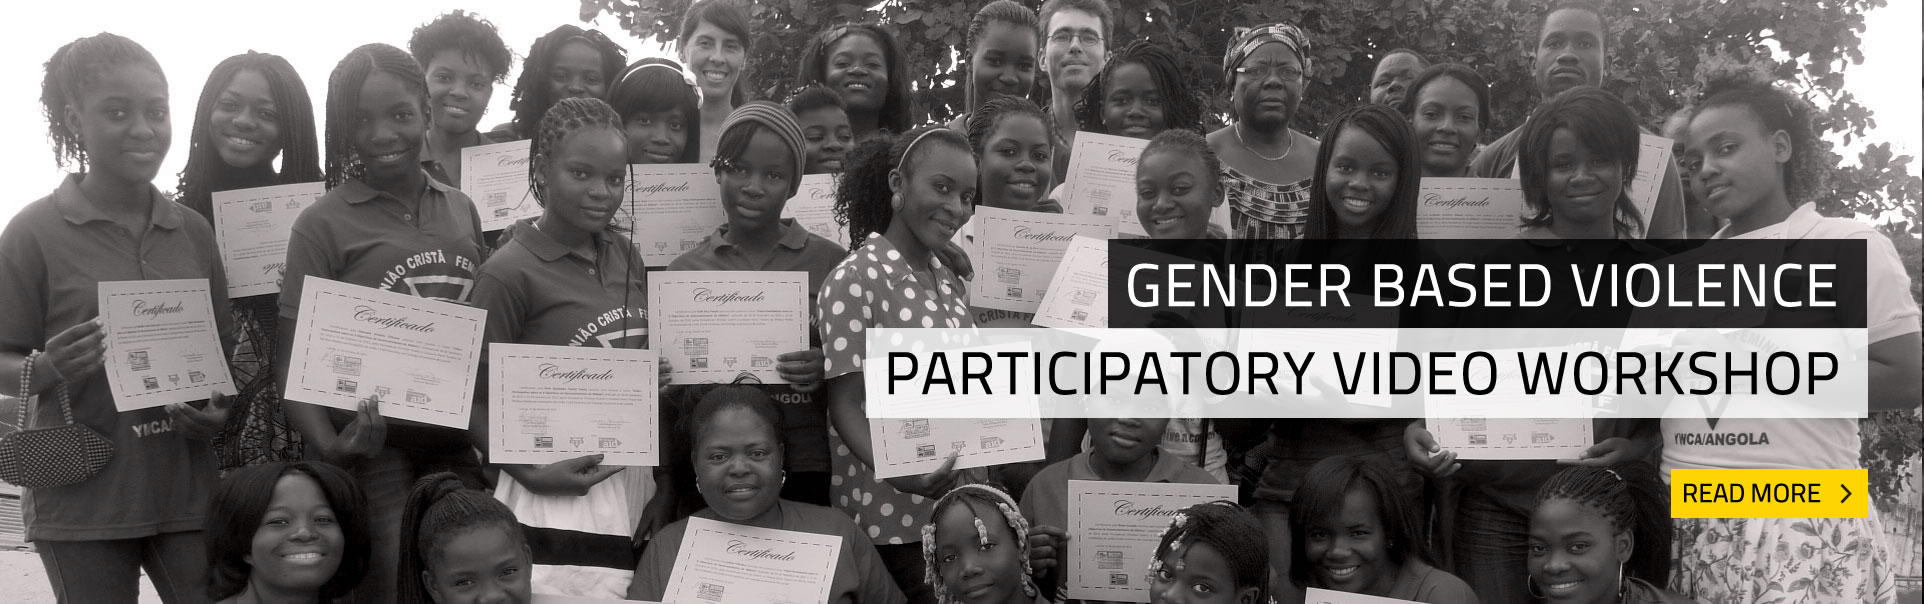 Gender-based violence in Luanda